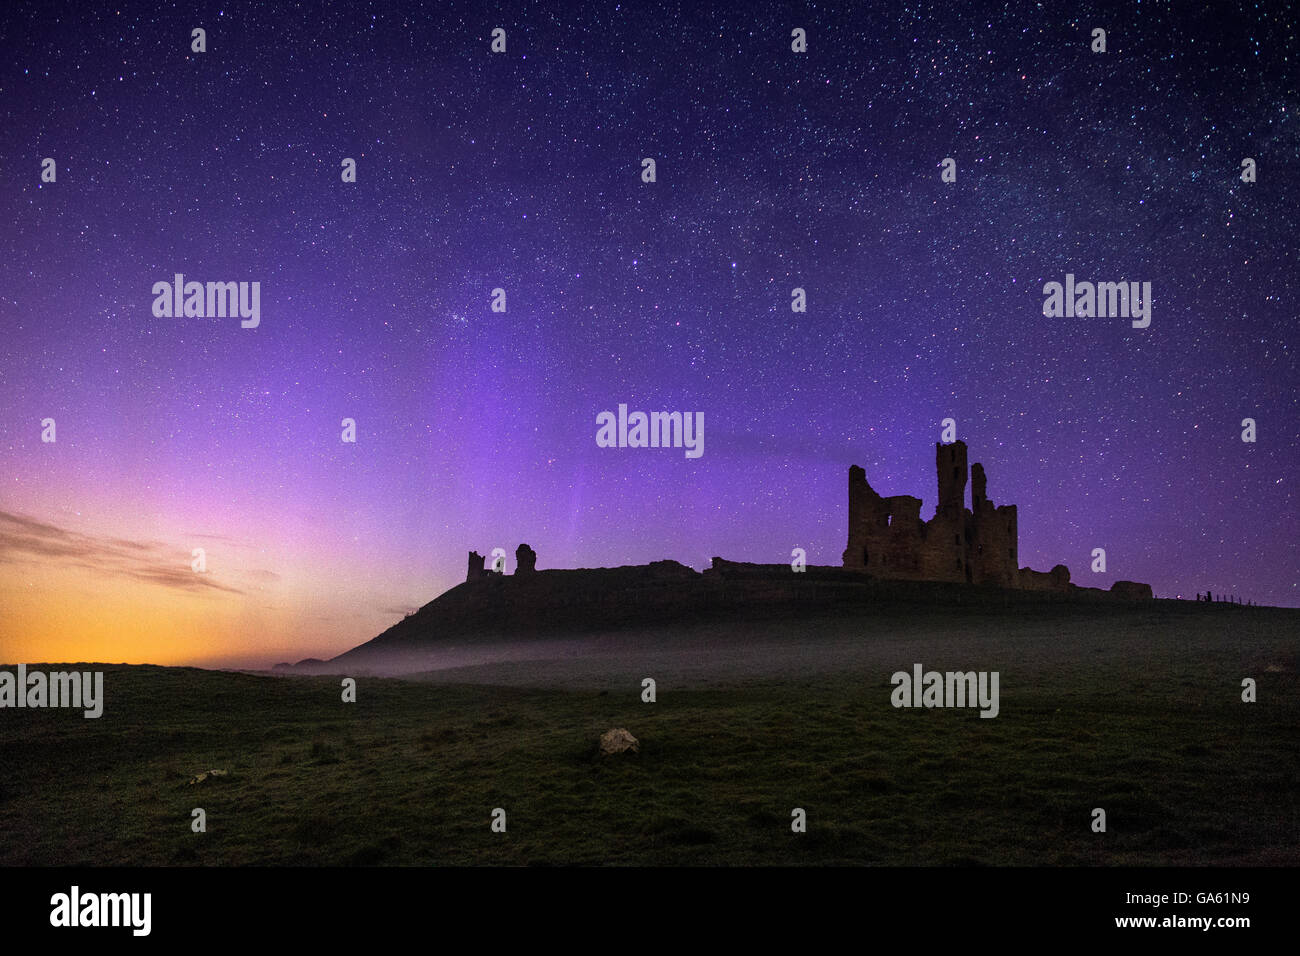 Dunstanburgh Castle at night with low mist and the northern lights dancing across the sky. - Stock Image